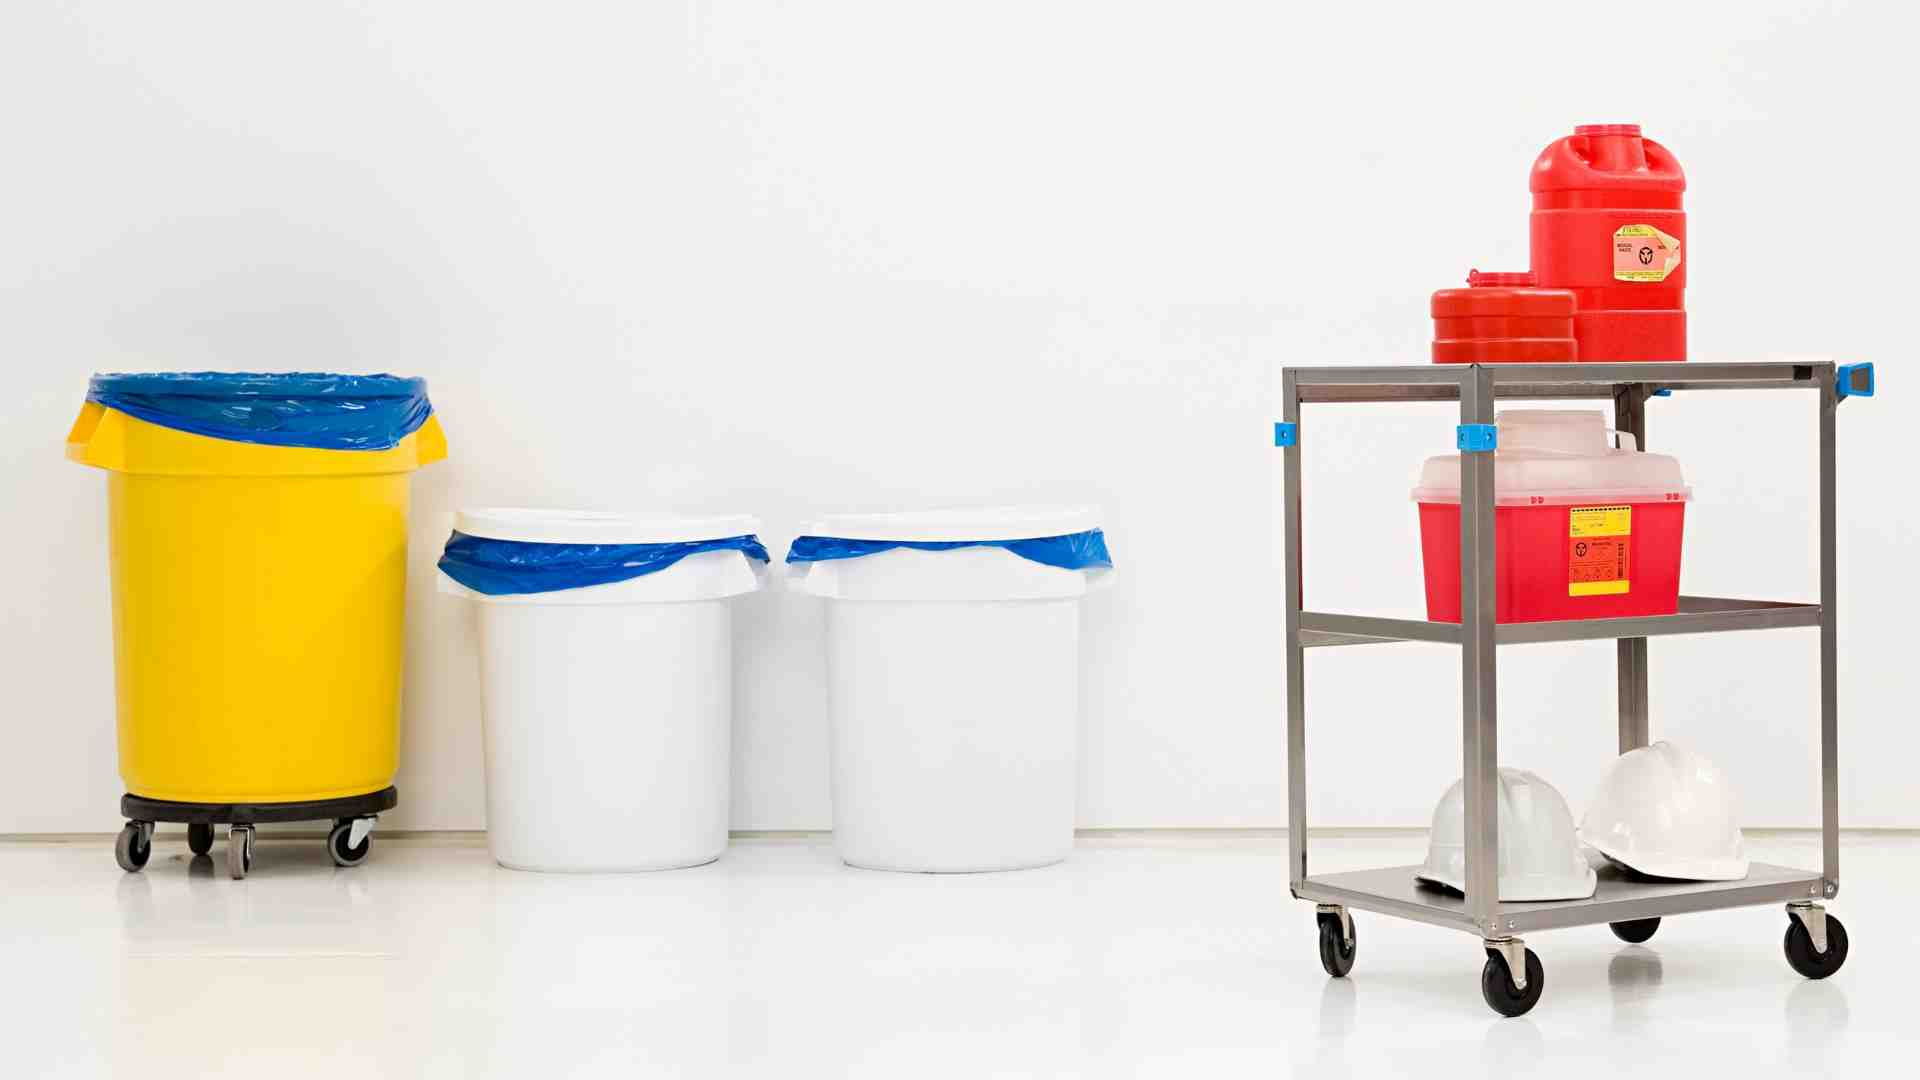 Waste management in healthcare